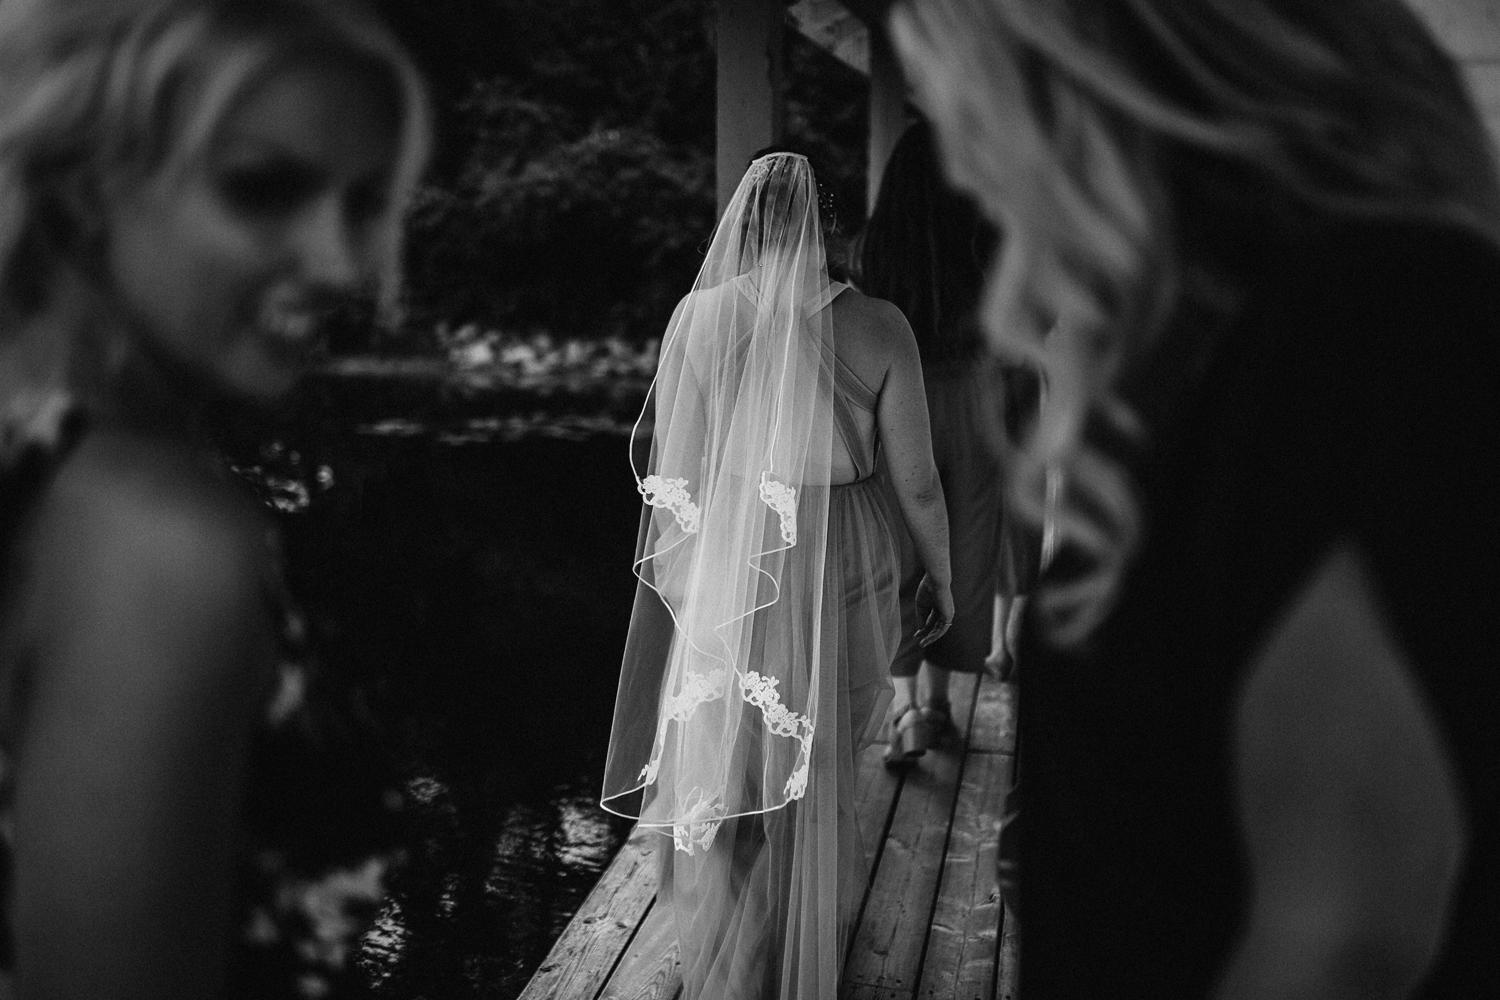 kerry ford photography - small intimate backyard rideau lake island wedding perth ontario-036.jpg